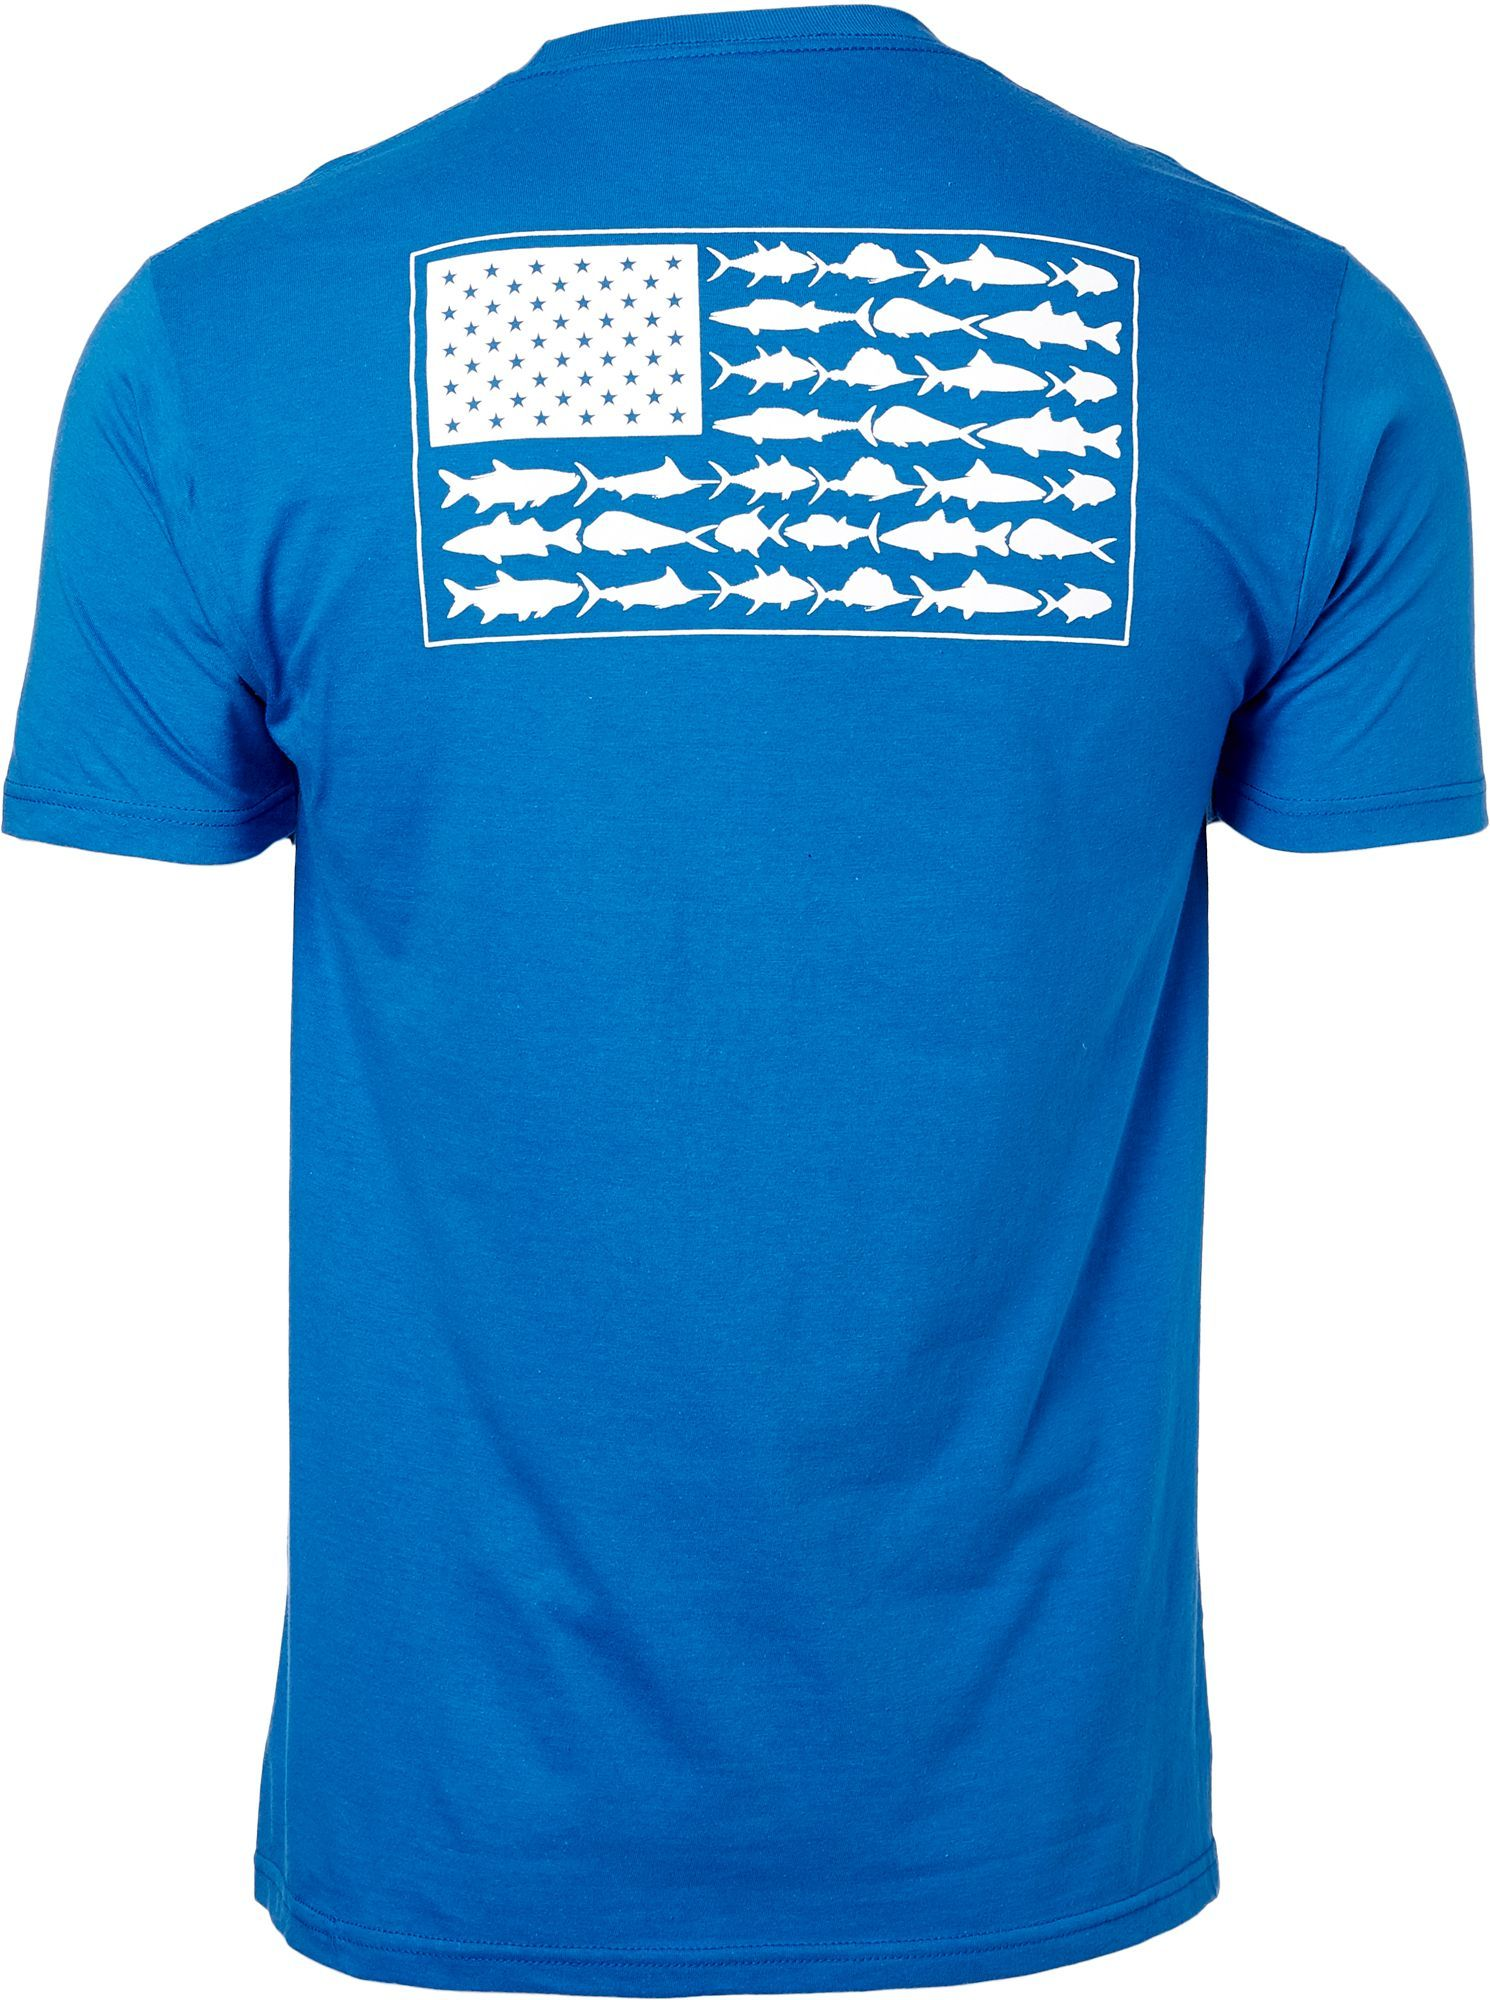 e76c2c5f43 Columbia PFG Americana Saltwater Fish Flag T-Shirt, Blue. Find this Pin and  more on Products by DICK'S Sporting Goods. Tags. Short Sleeve Tee